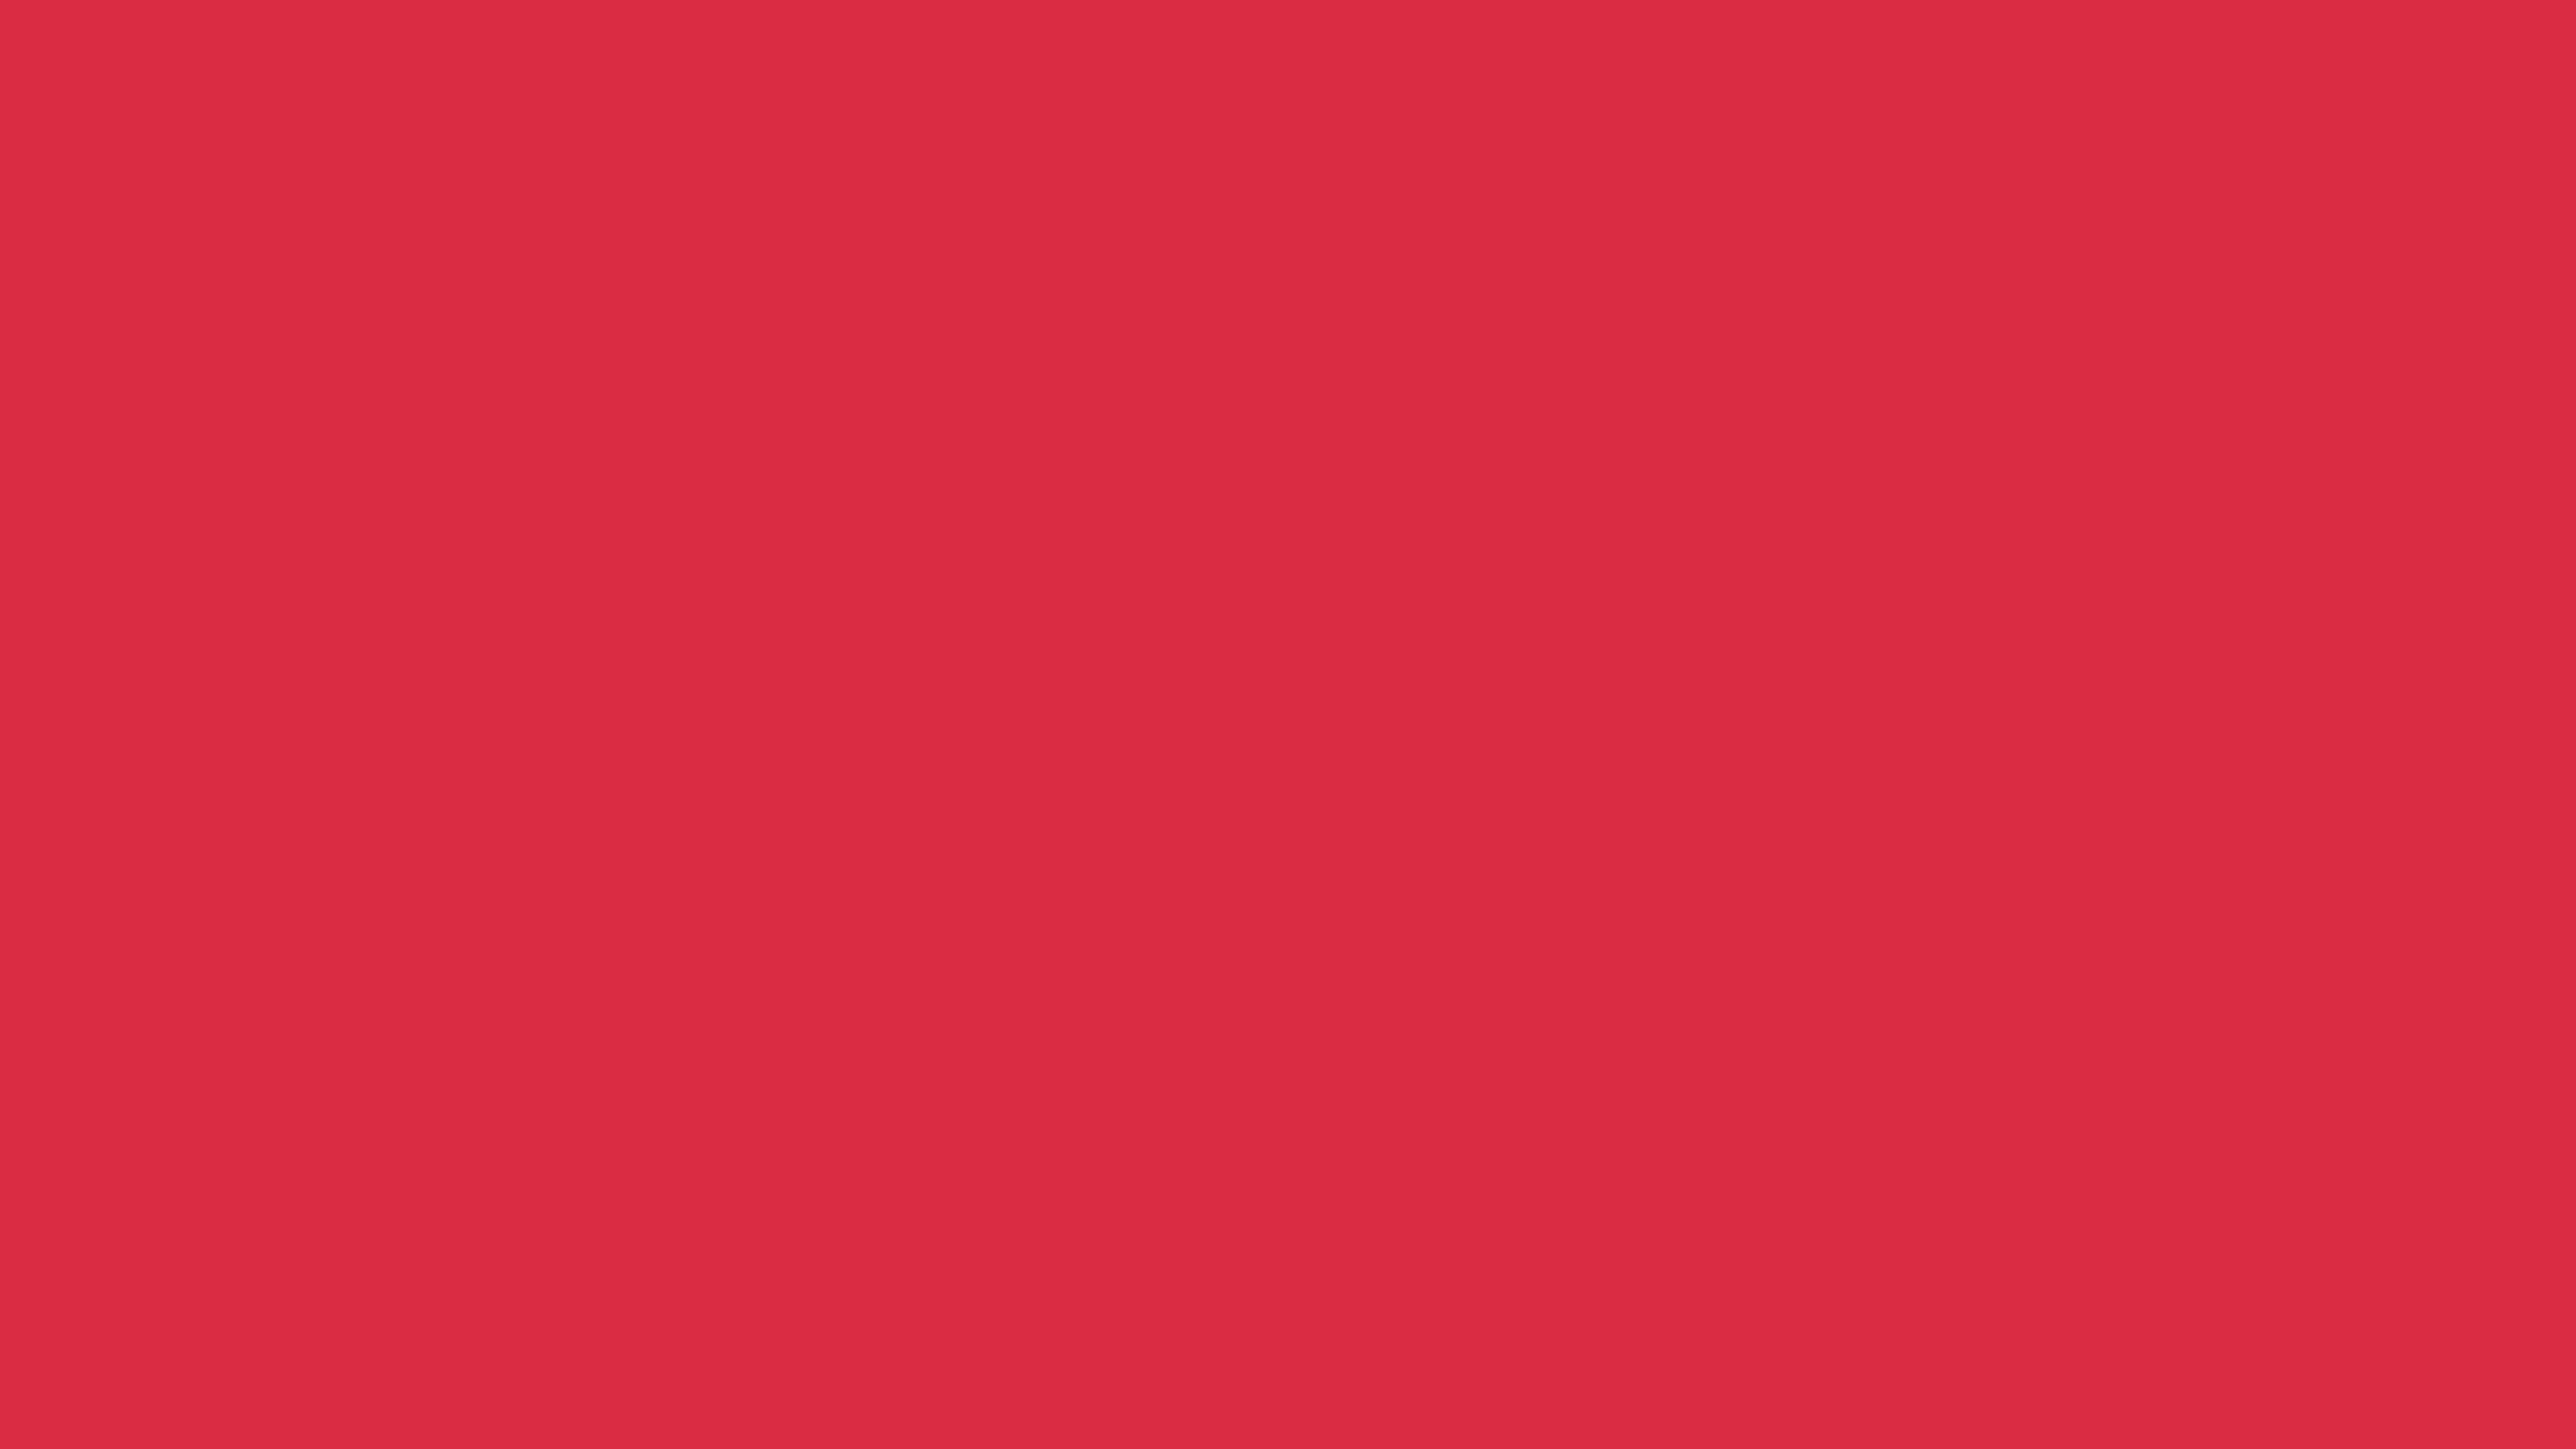 5120x2880 Rusty Red Solid Color Background